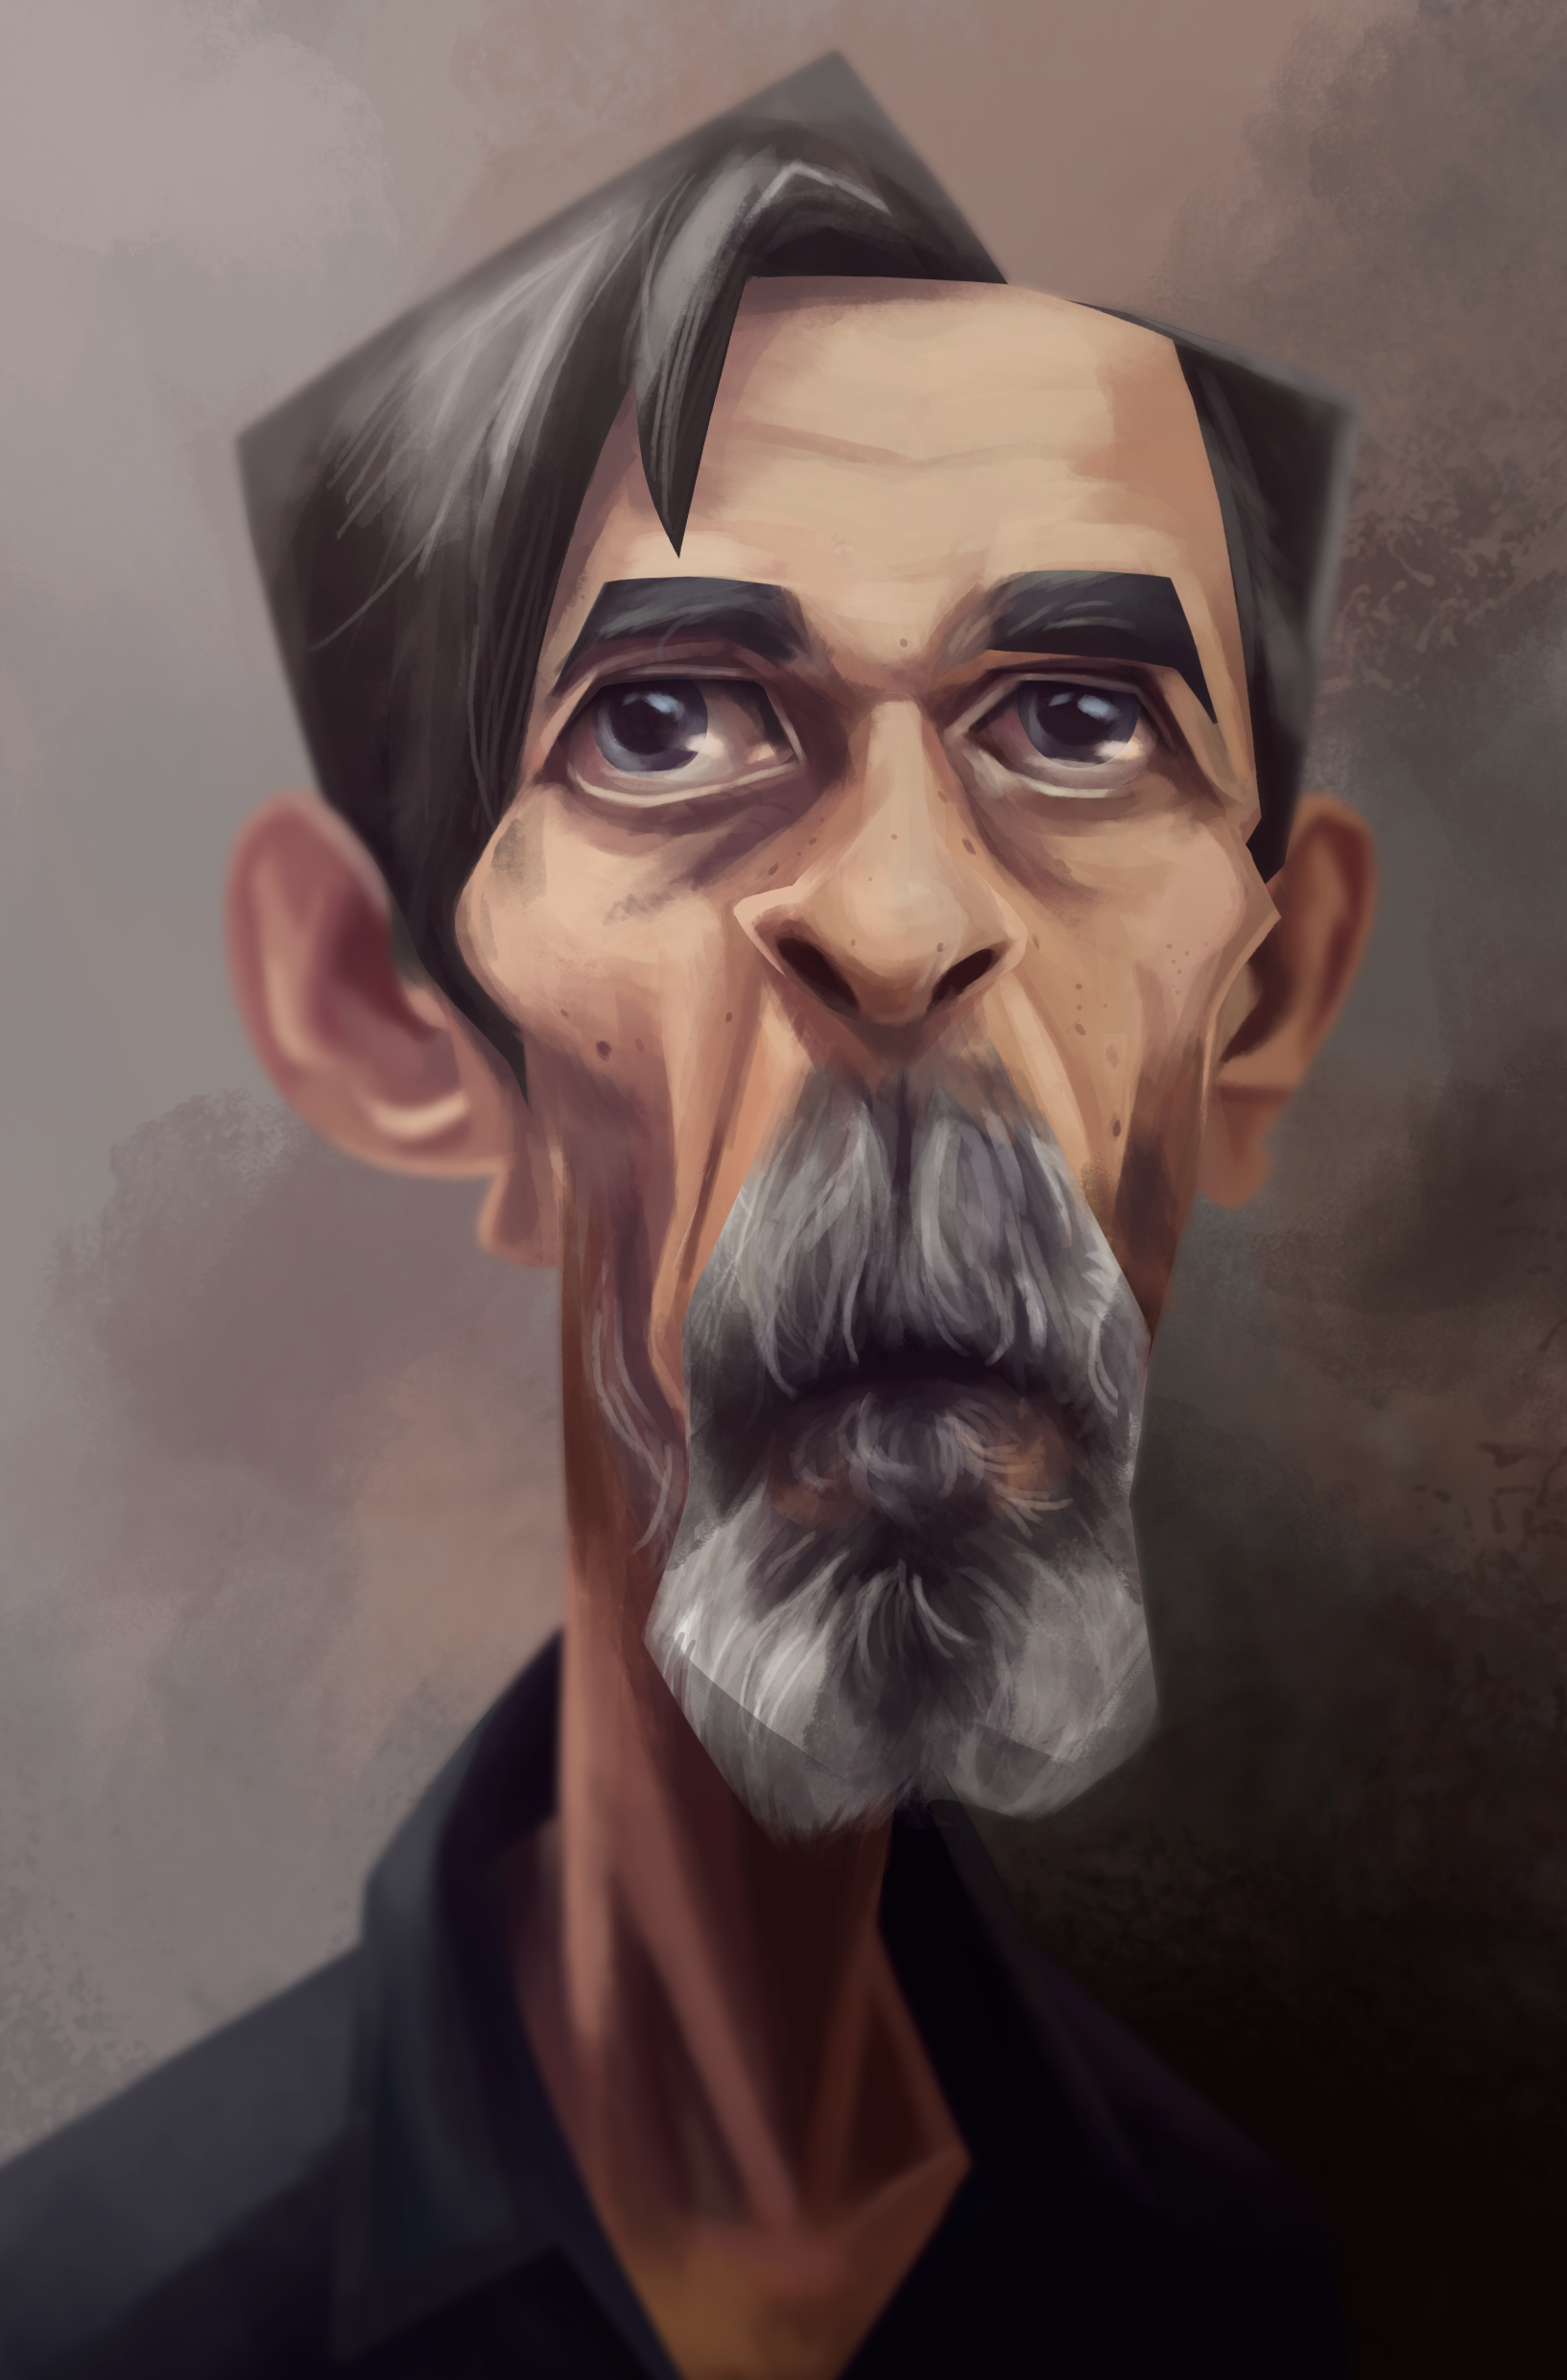 Old dude